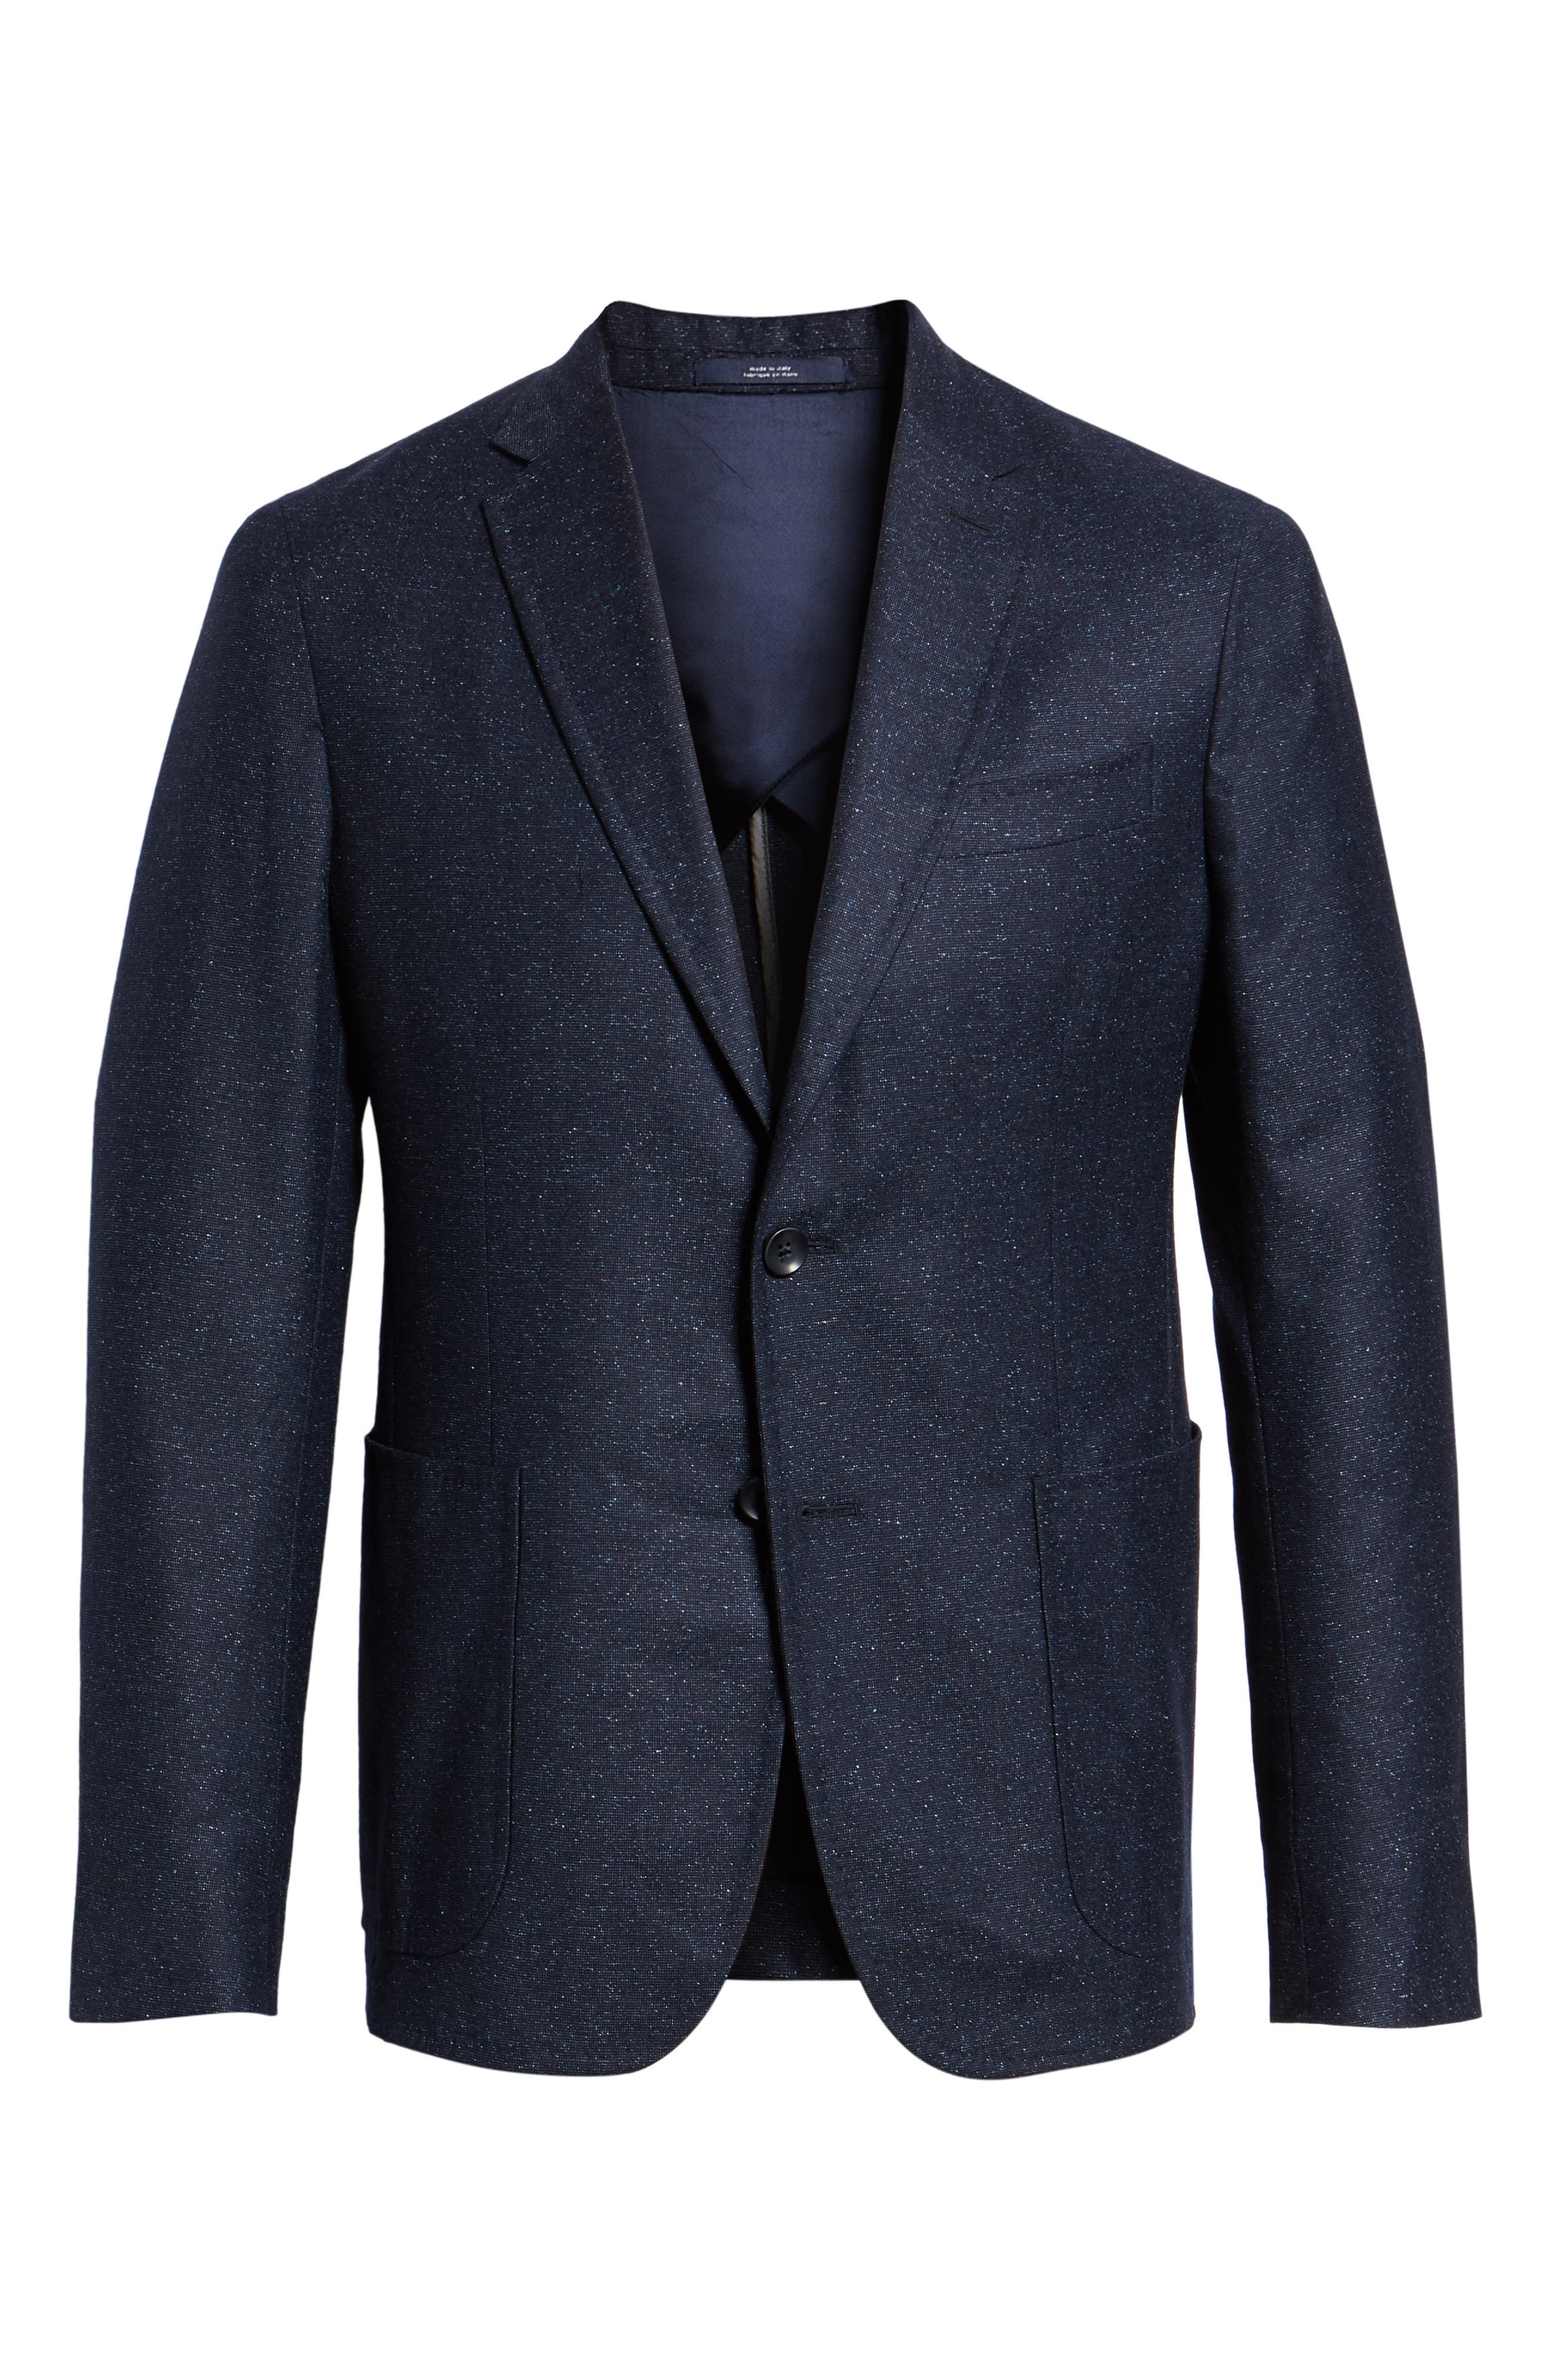 Extra Trim Fit Wool & Silk Soft Coat,                             Alternate thumbnail 5, color,                             NAVY